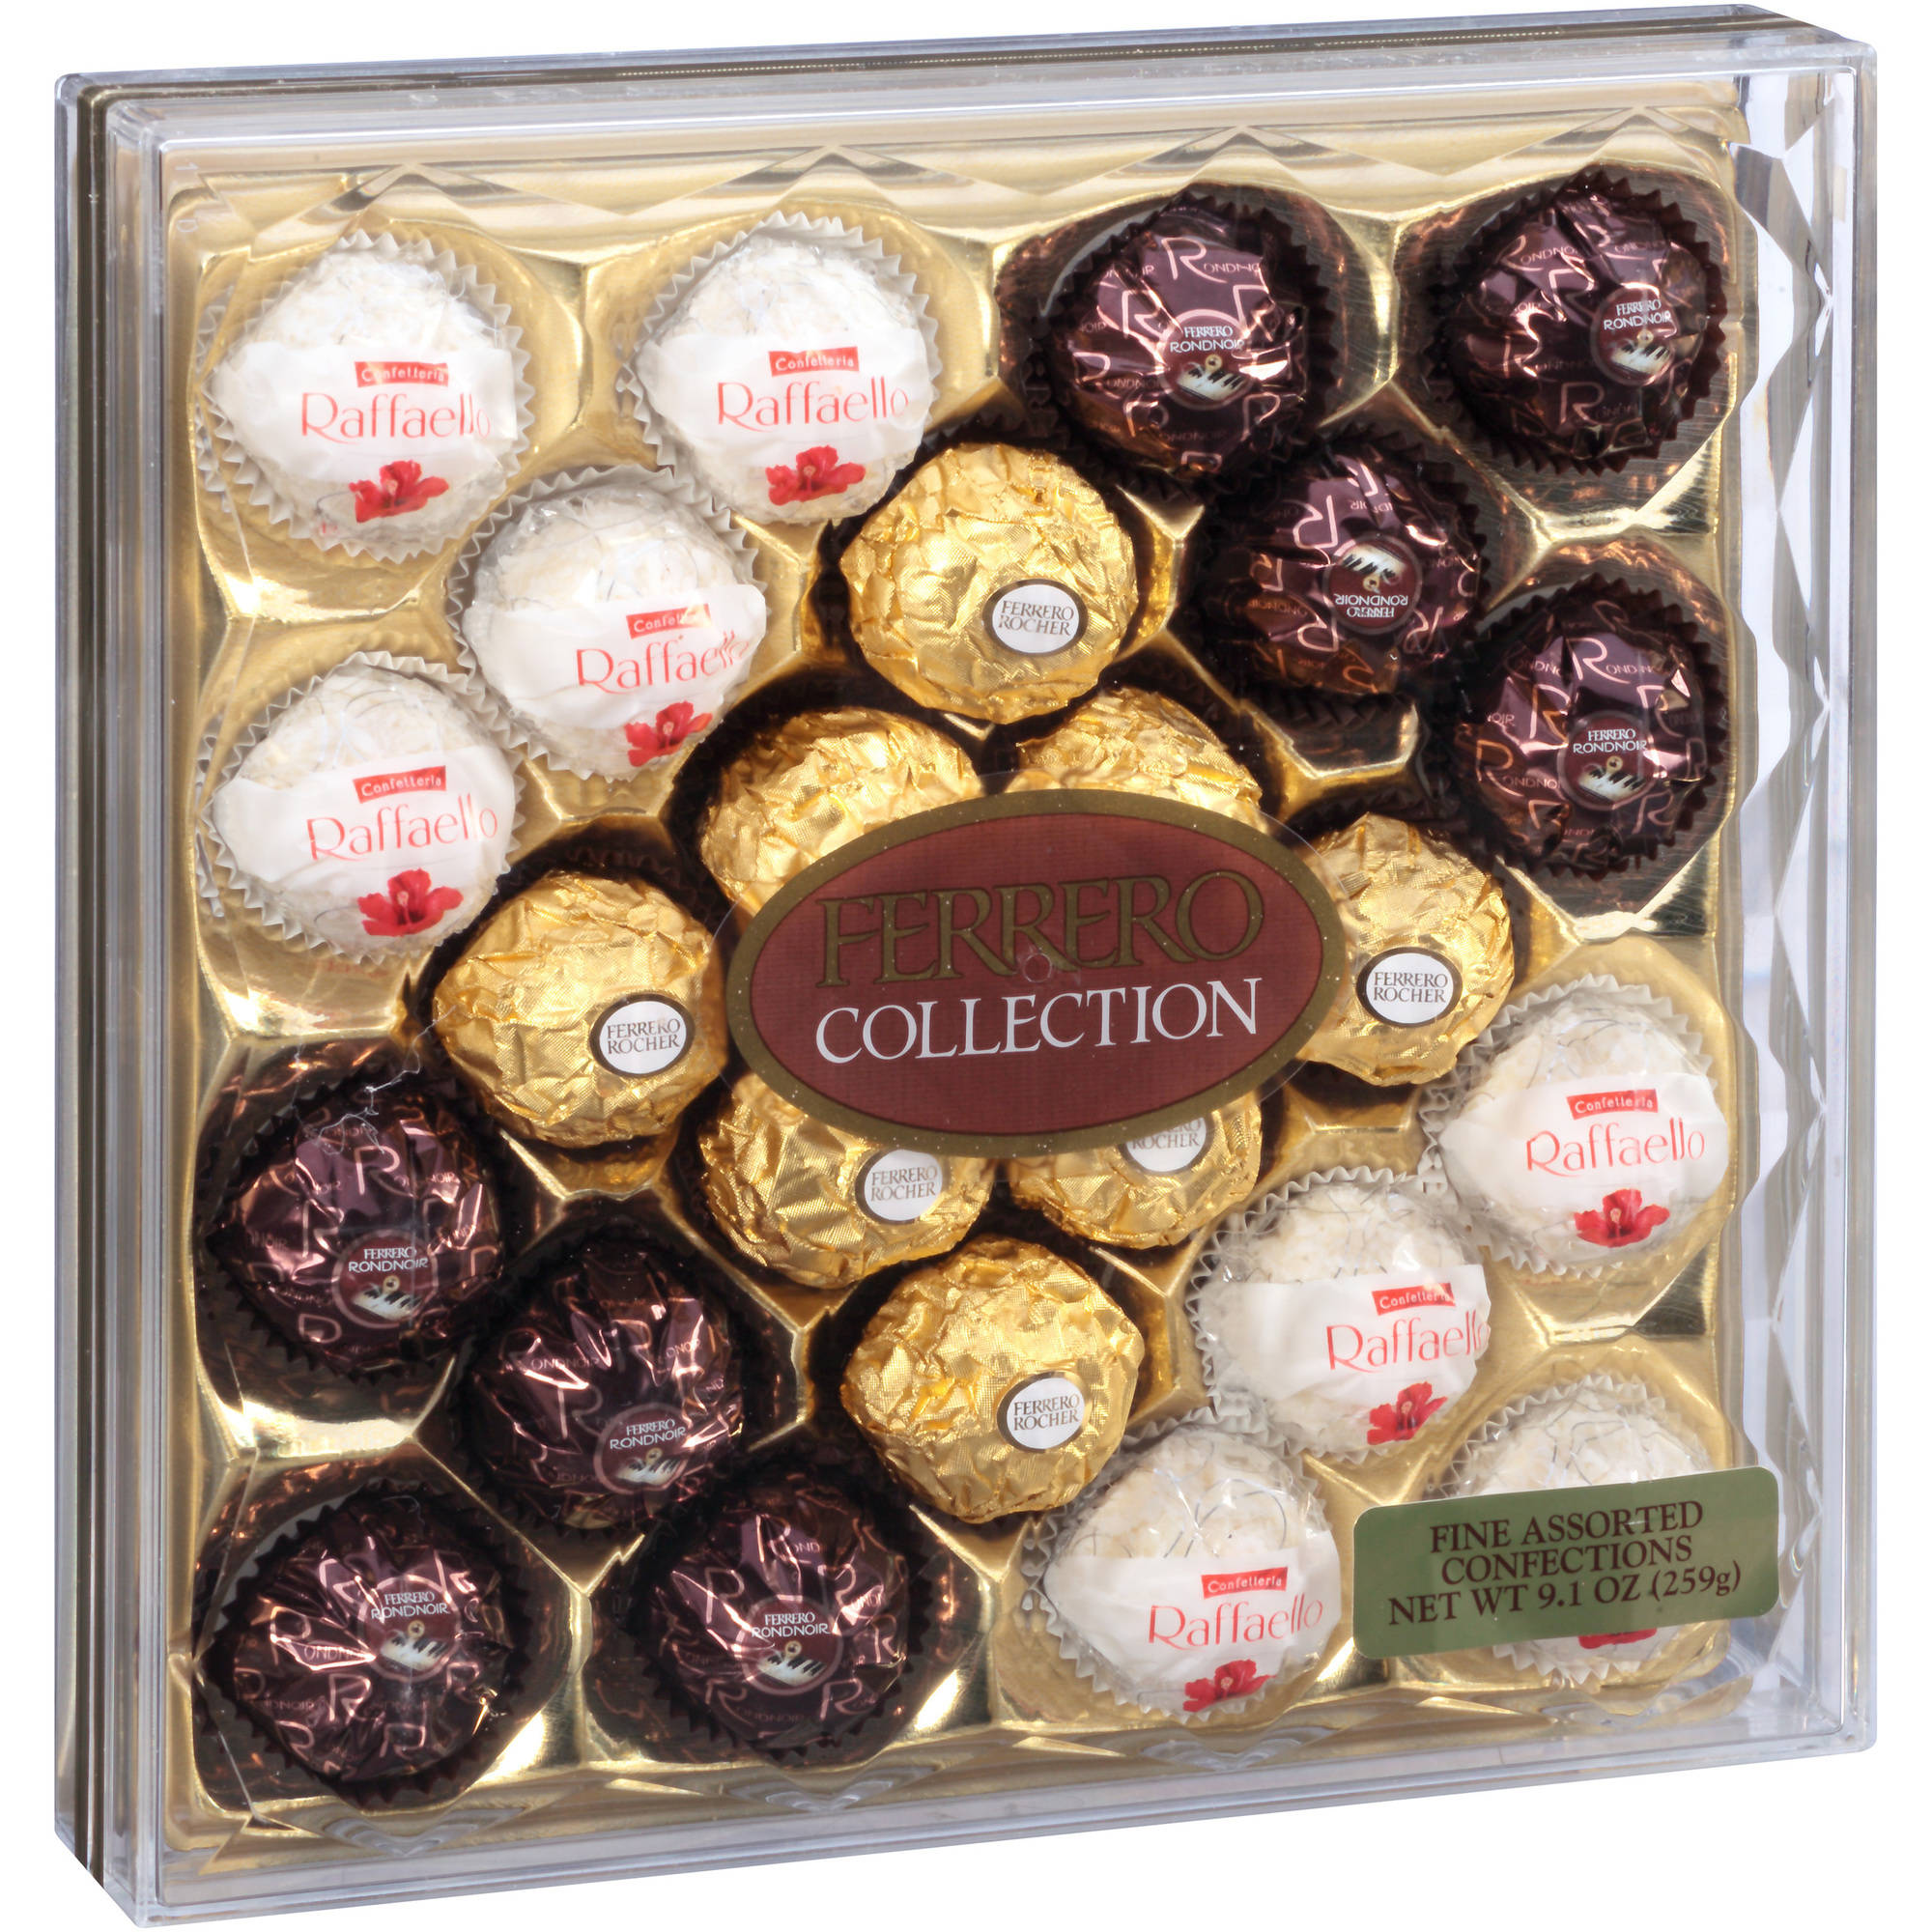 Ferrero Rocher Collection Assorted Chocolate Candy, 0.37 oz, 24 ct ...